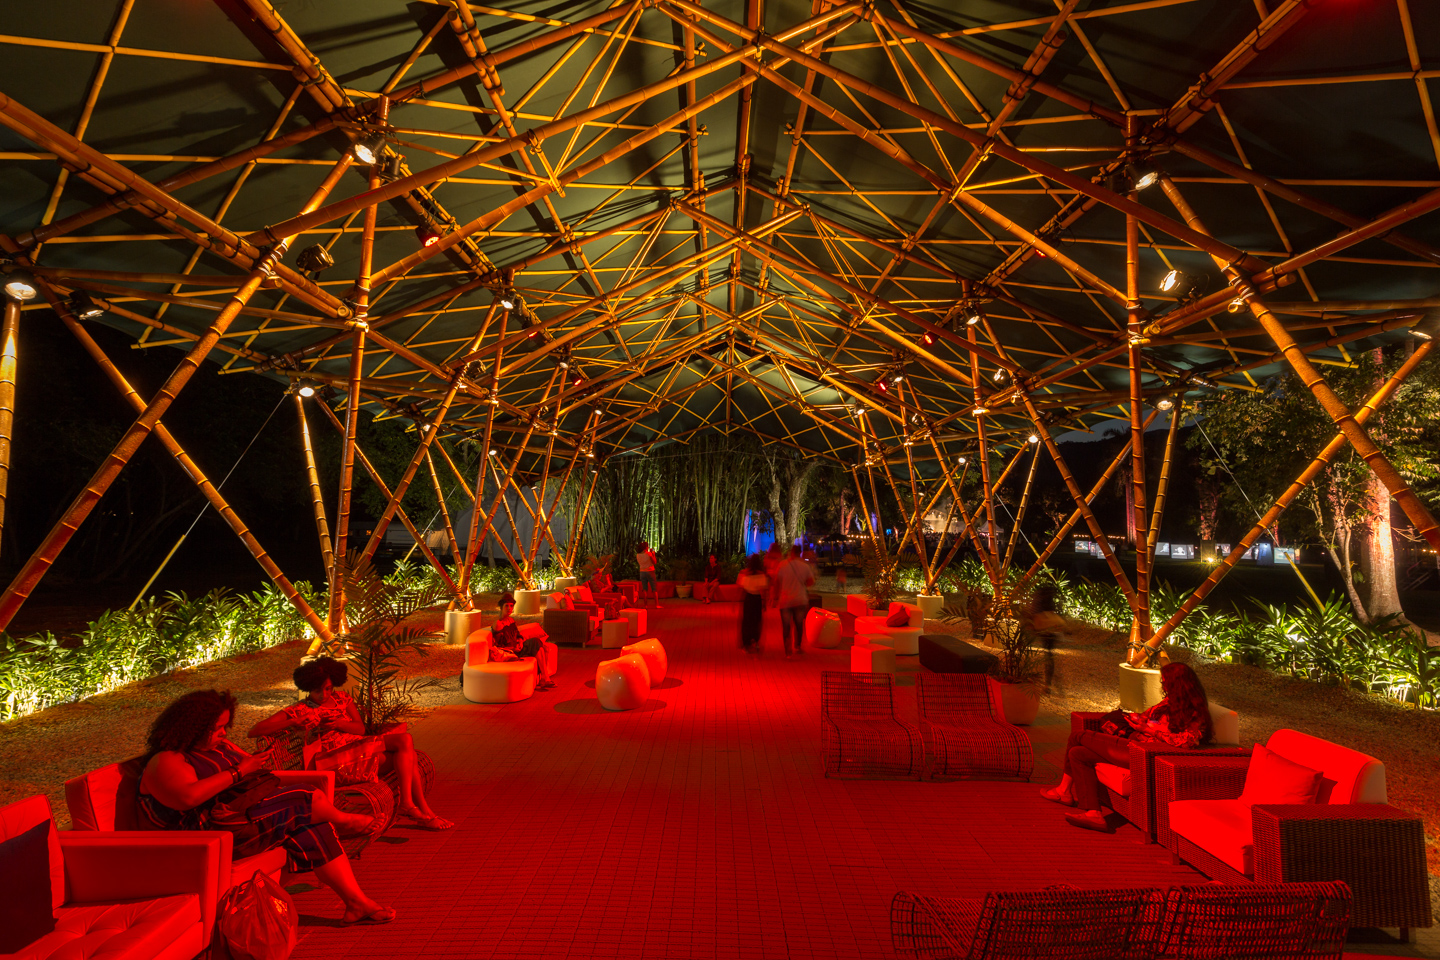 Deployable-bamboo-space-structure-pavilion-Bambutec-4.jpg